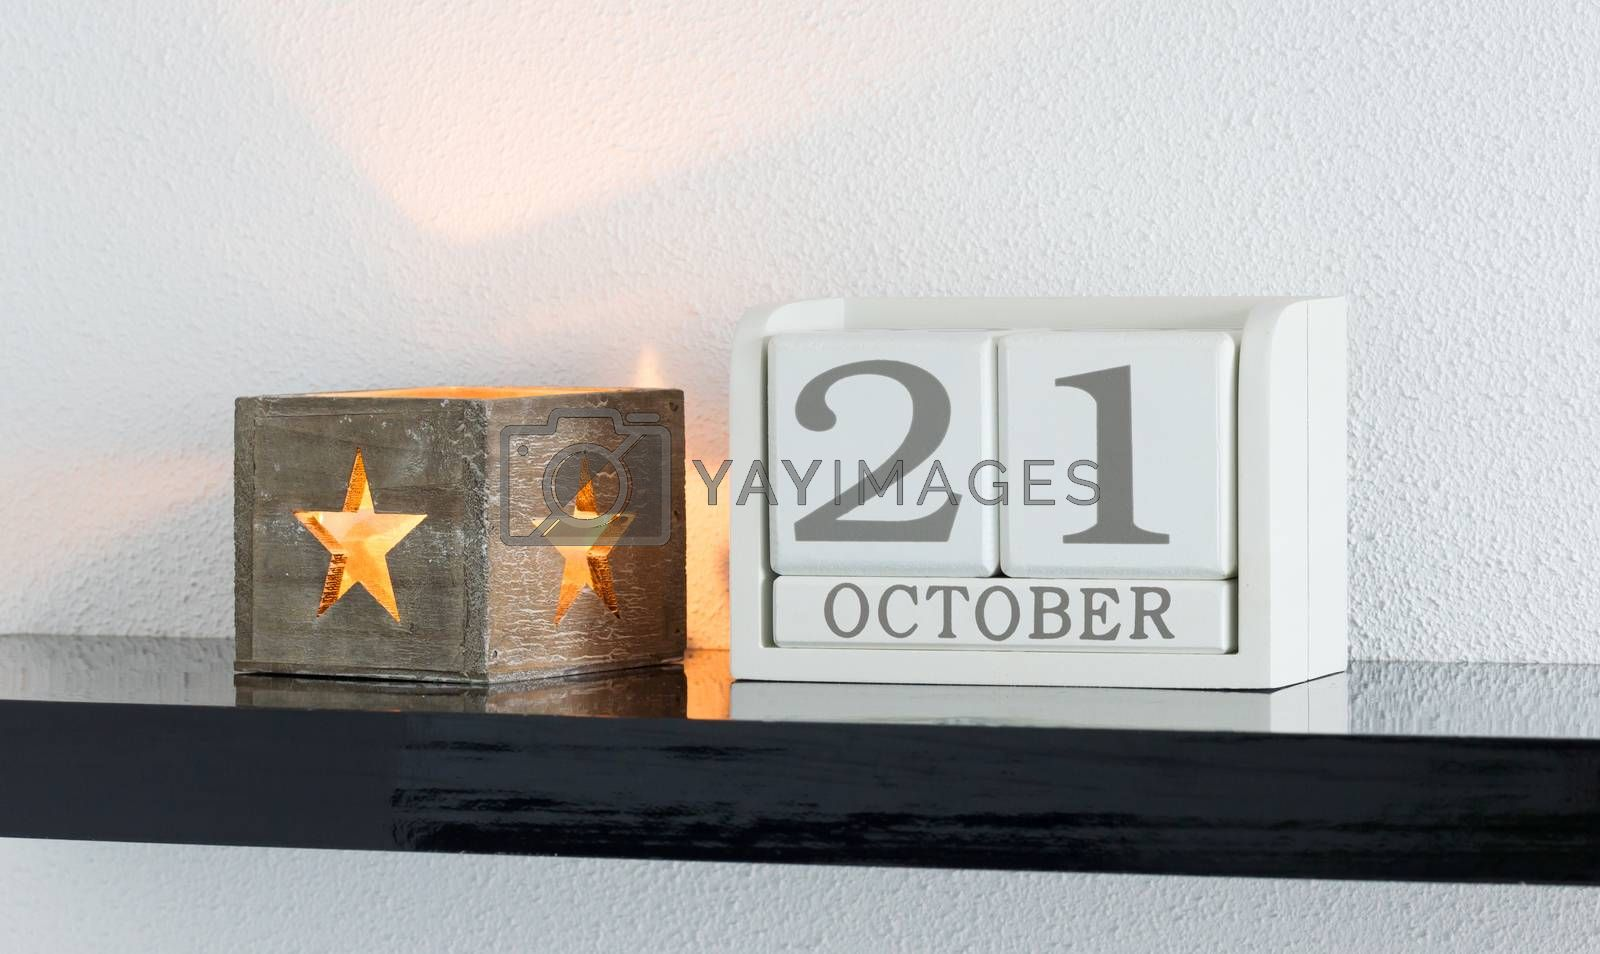 White block calendar present date 21 and month October by michaklootwijk